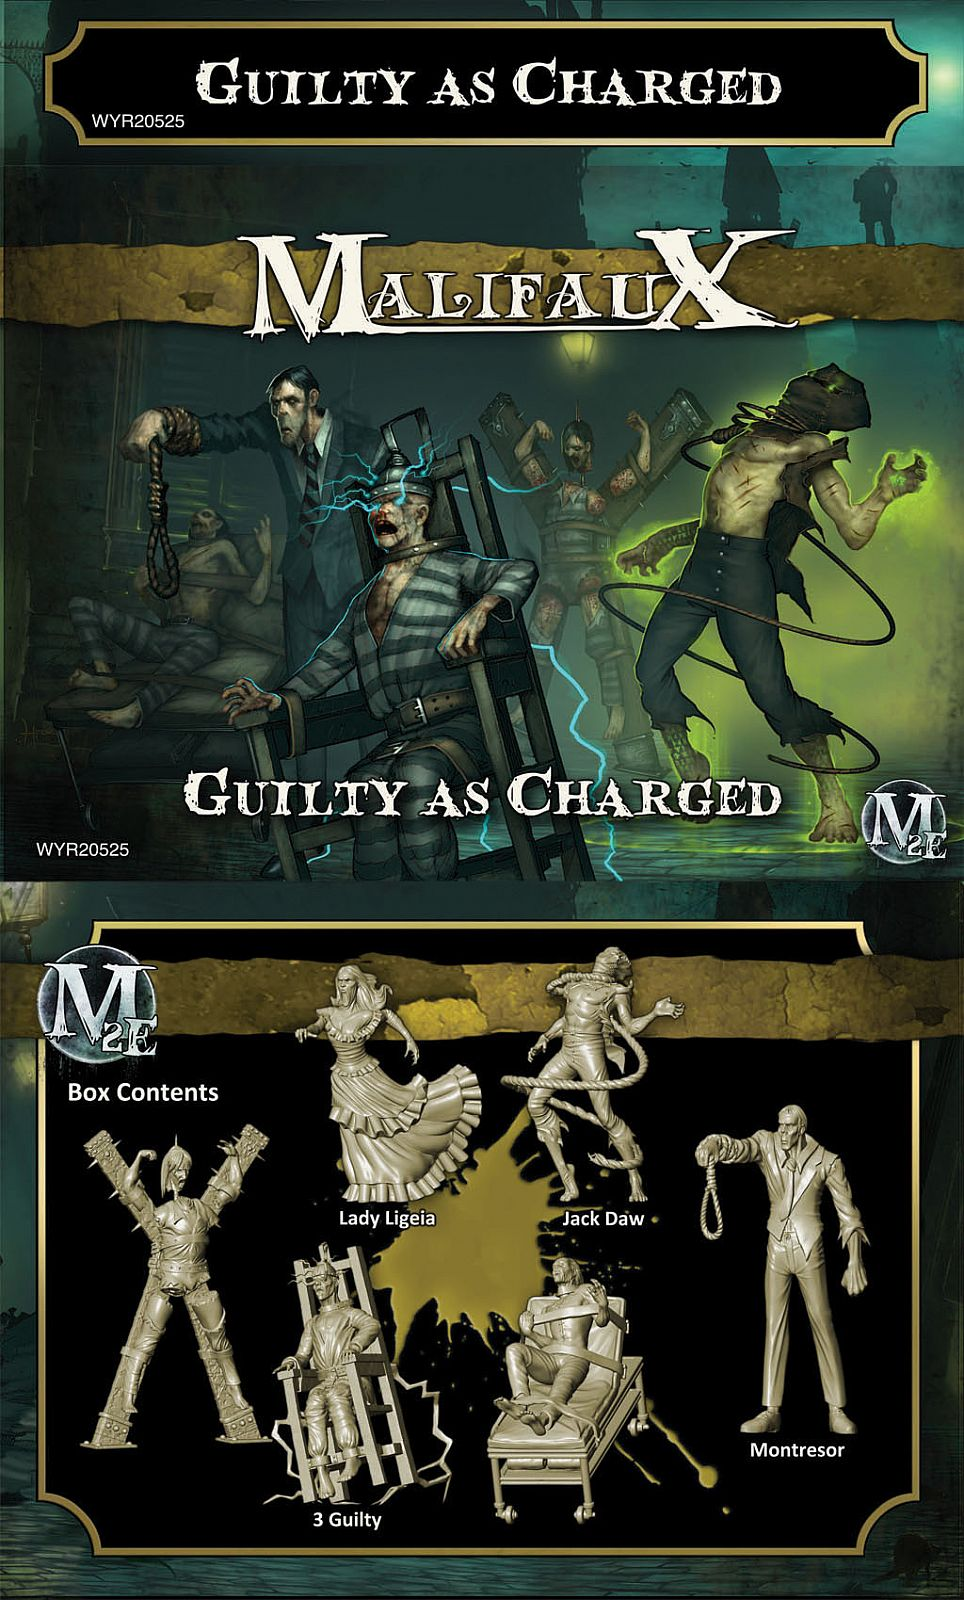 Guilty as Charged - Jack Daw Box Set - Yellow Transparent